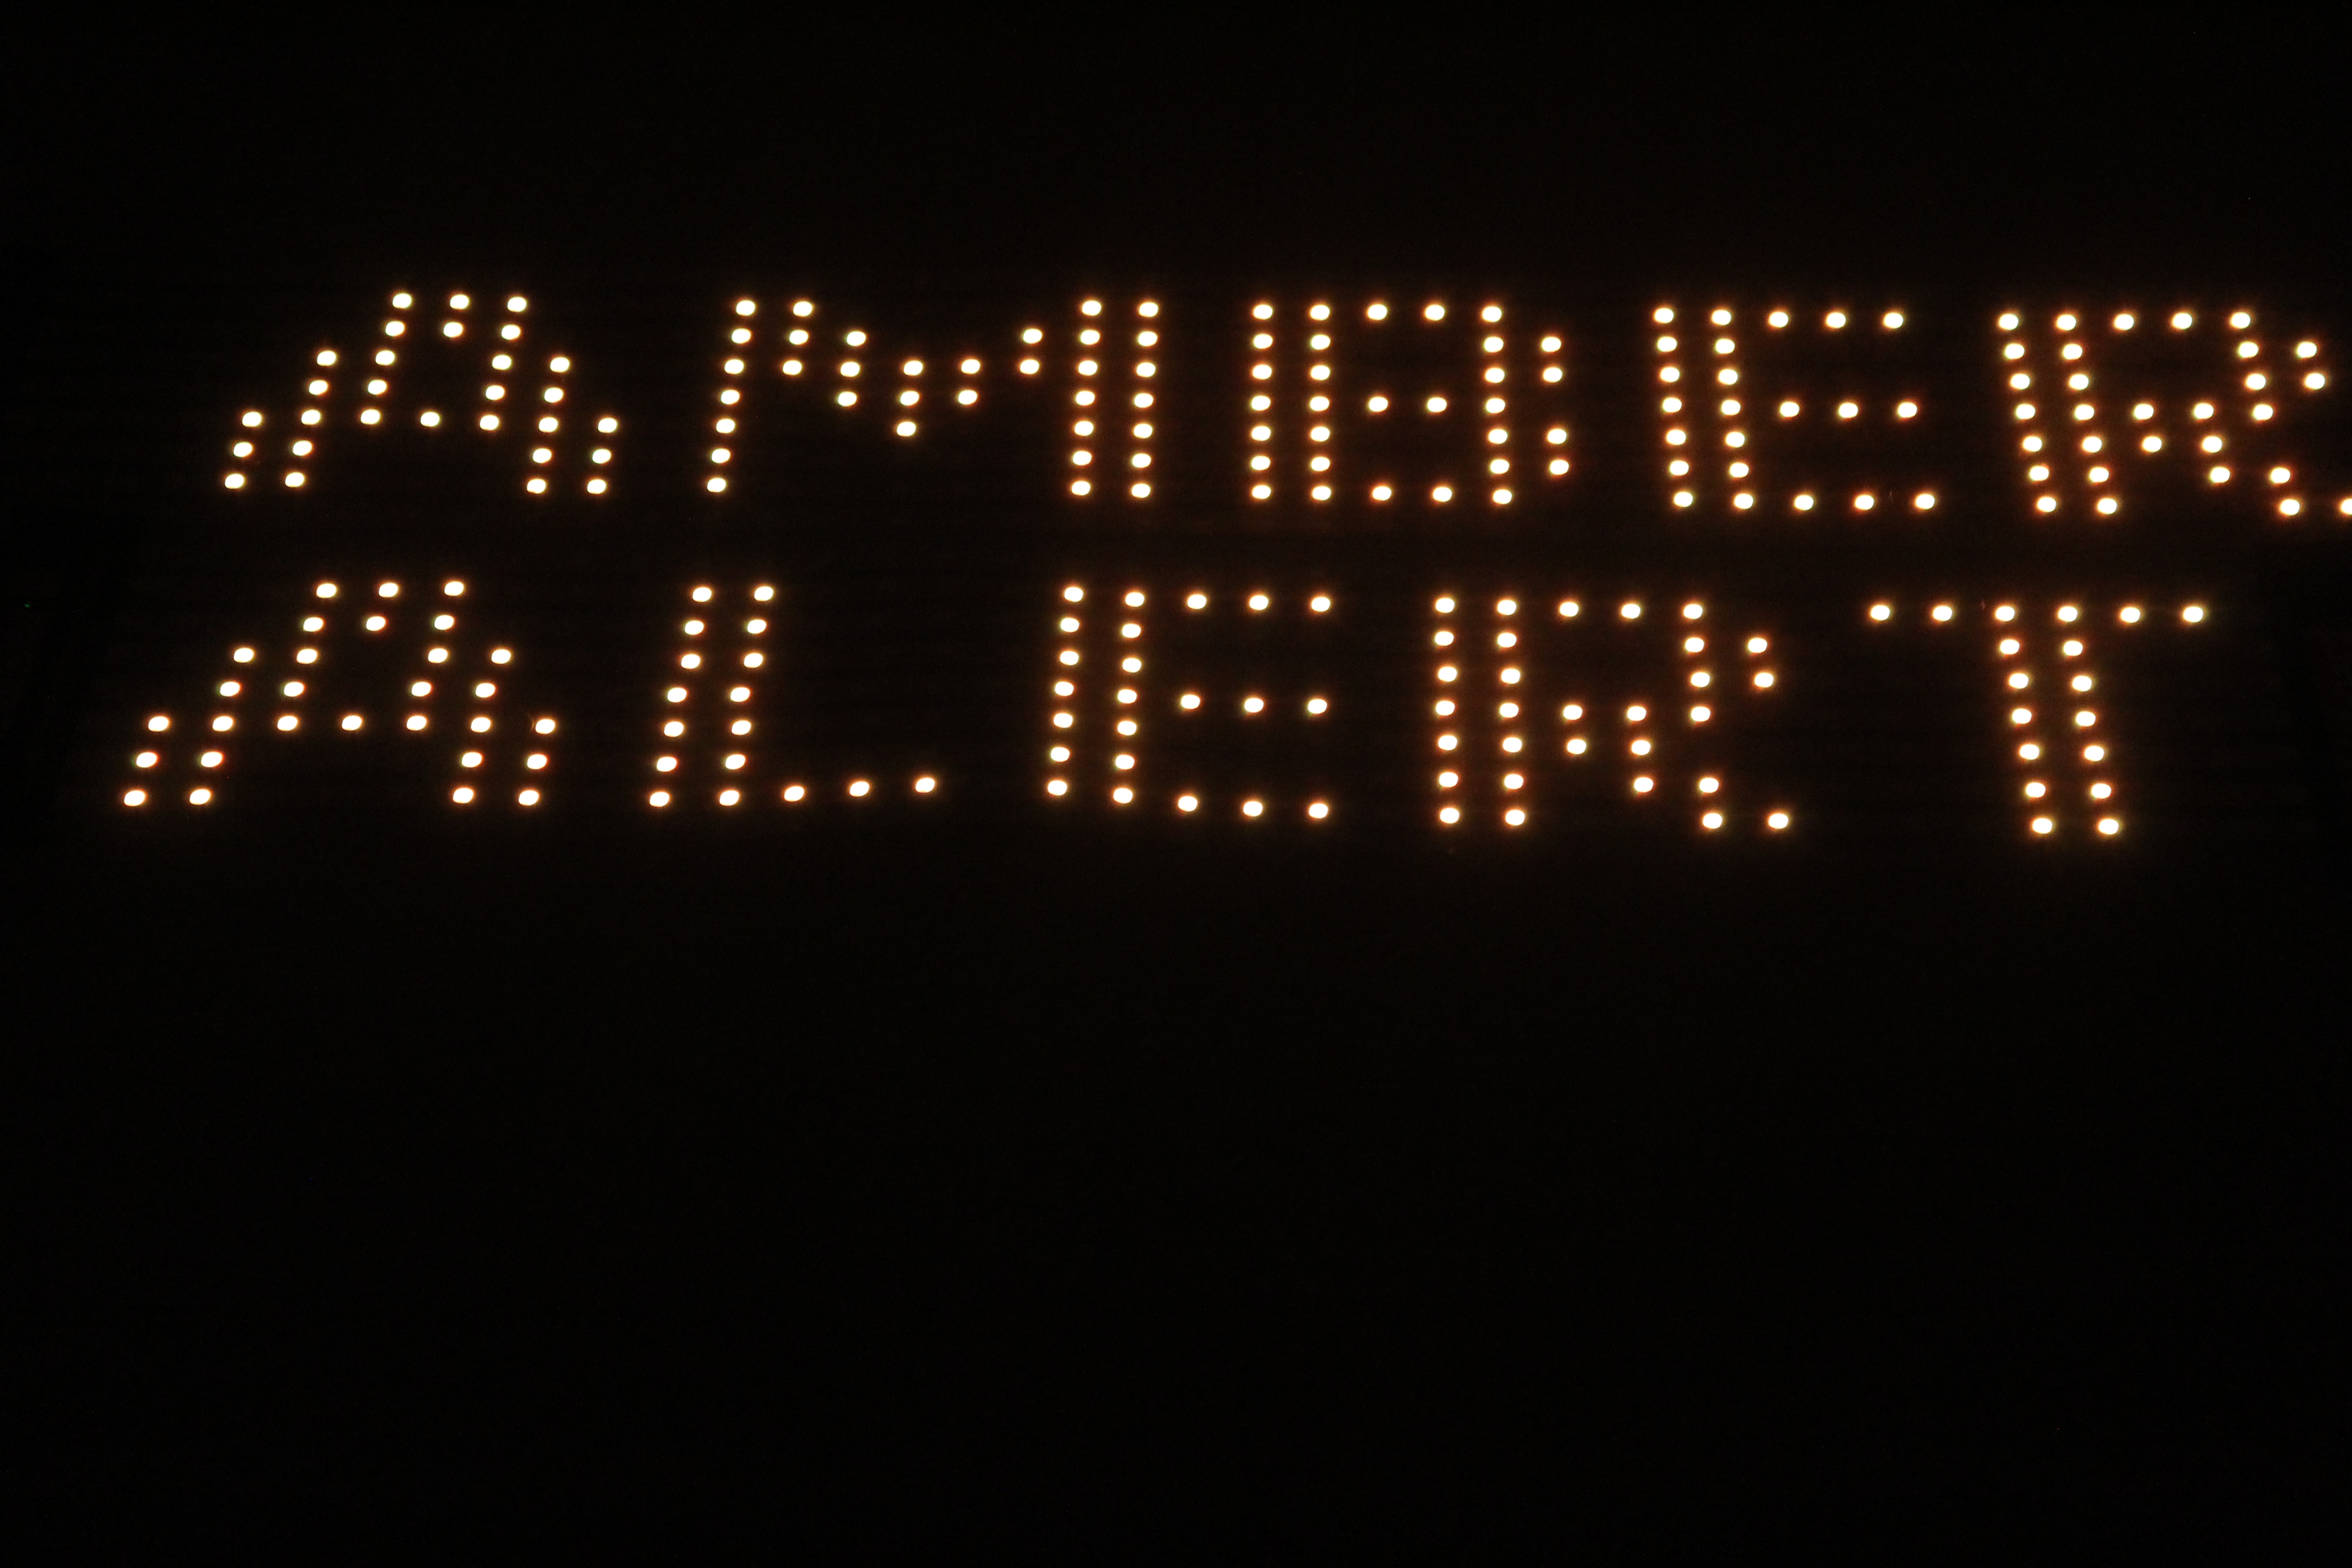 led display amber alerts